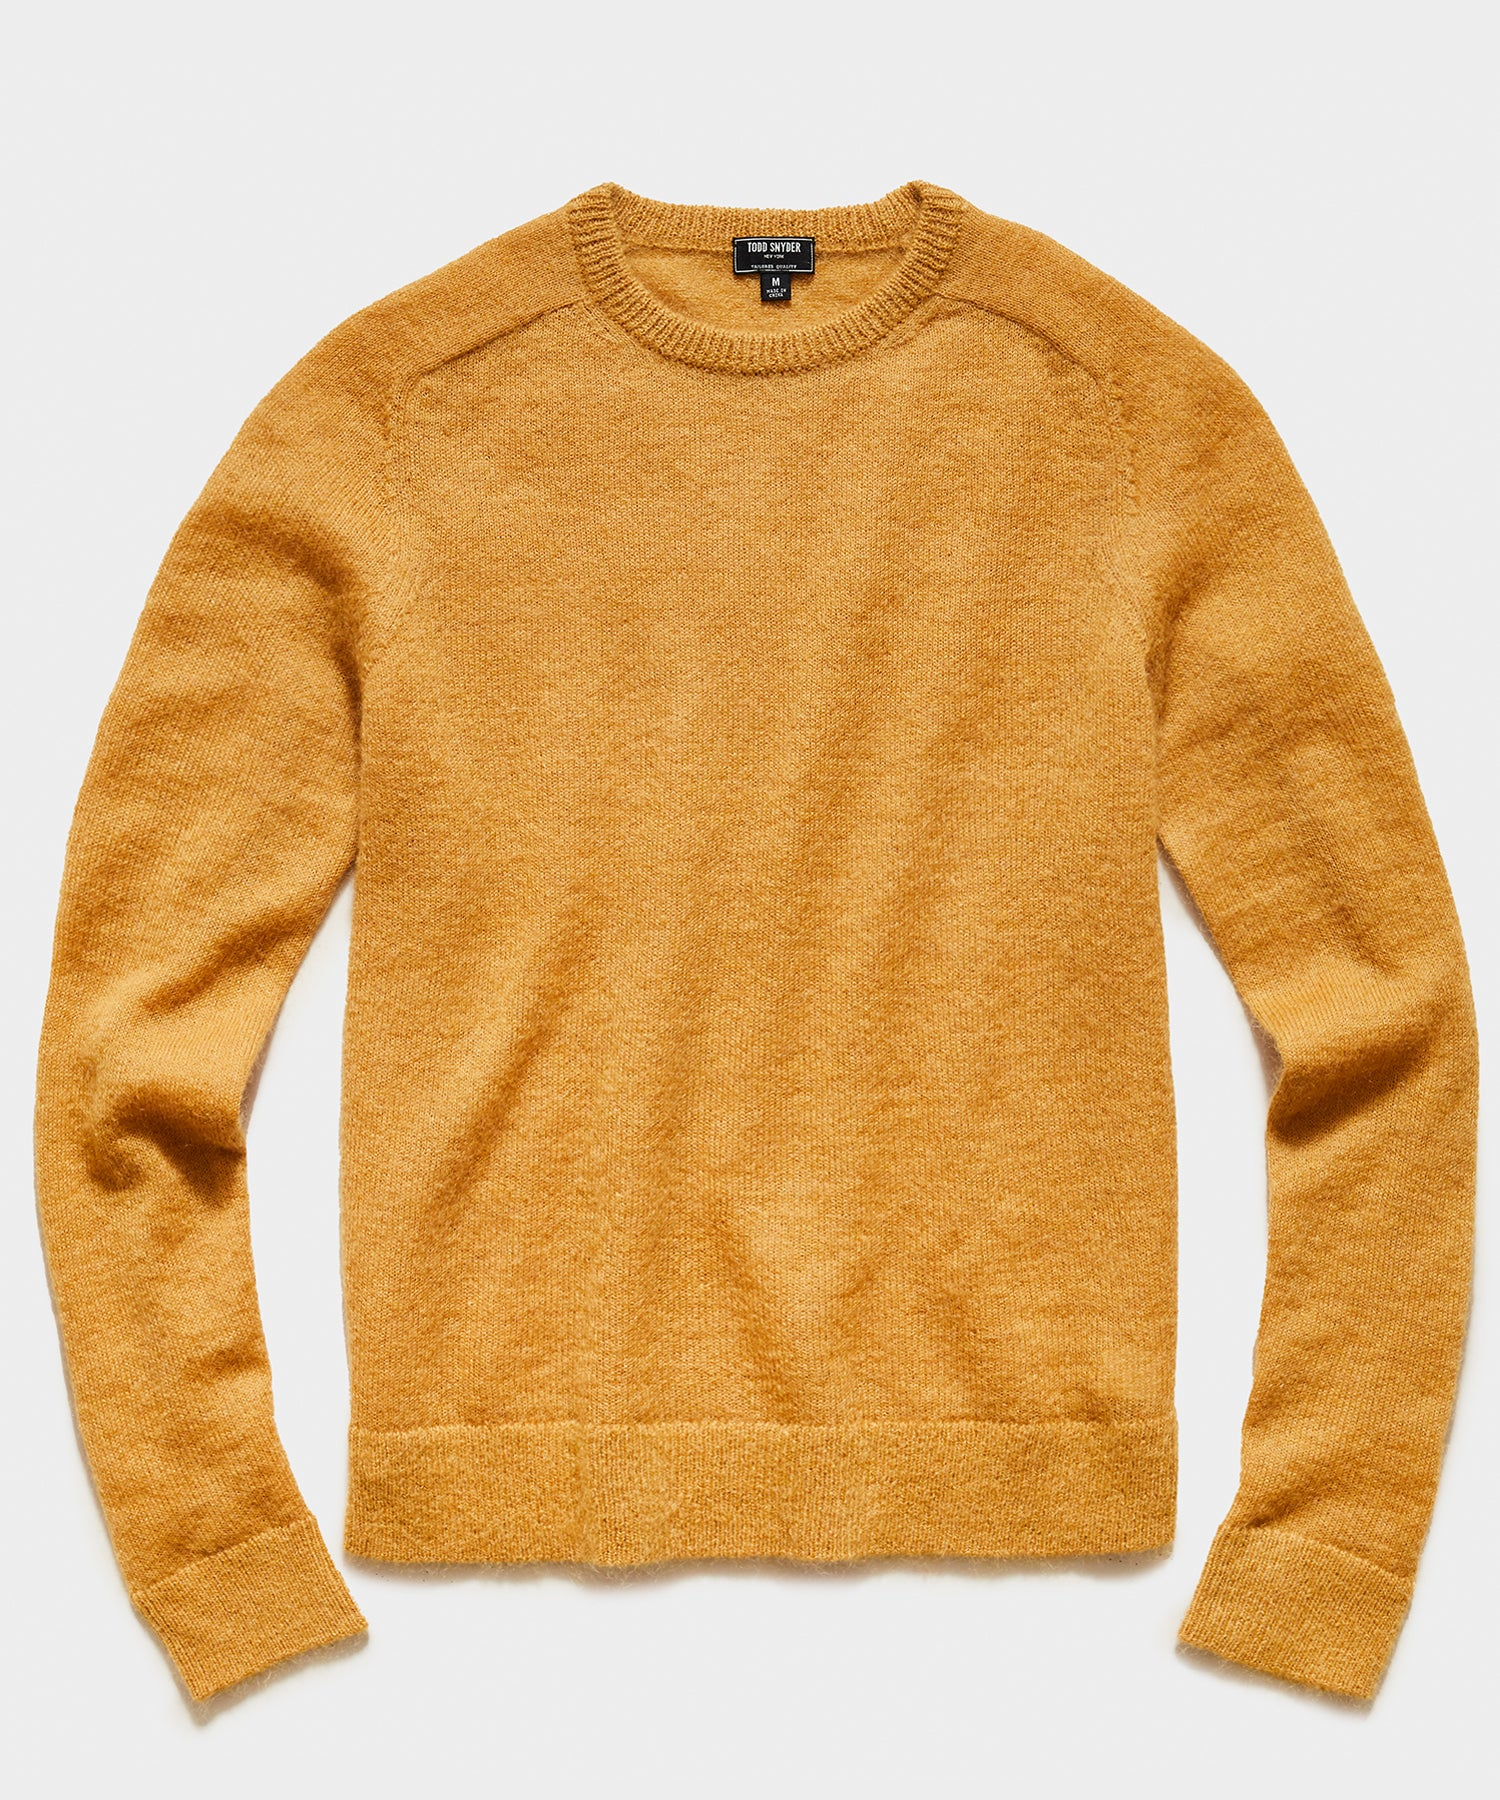 Brushed Italian Mohair Wool Sweater in Mustard